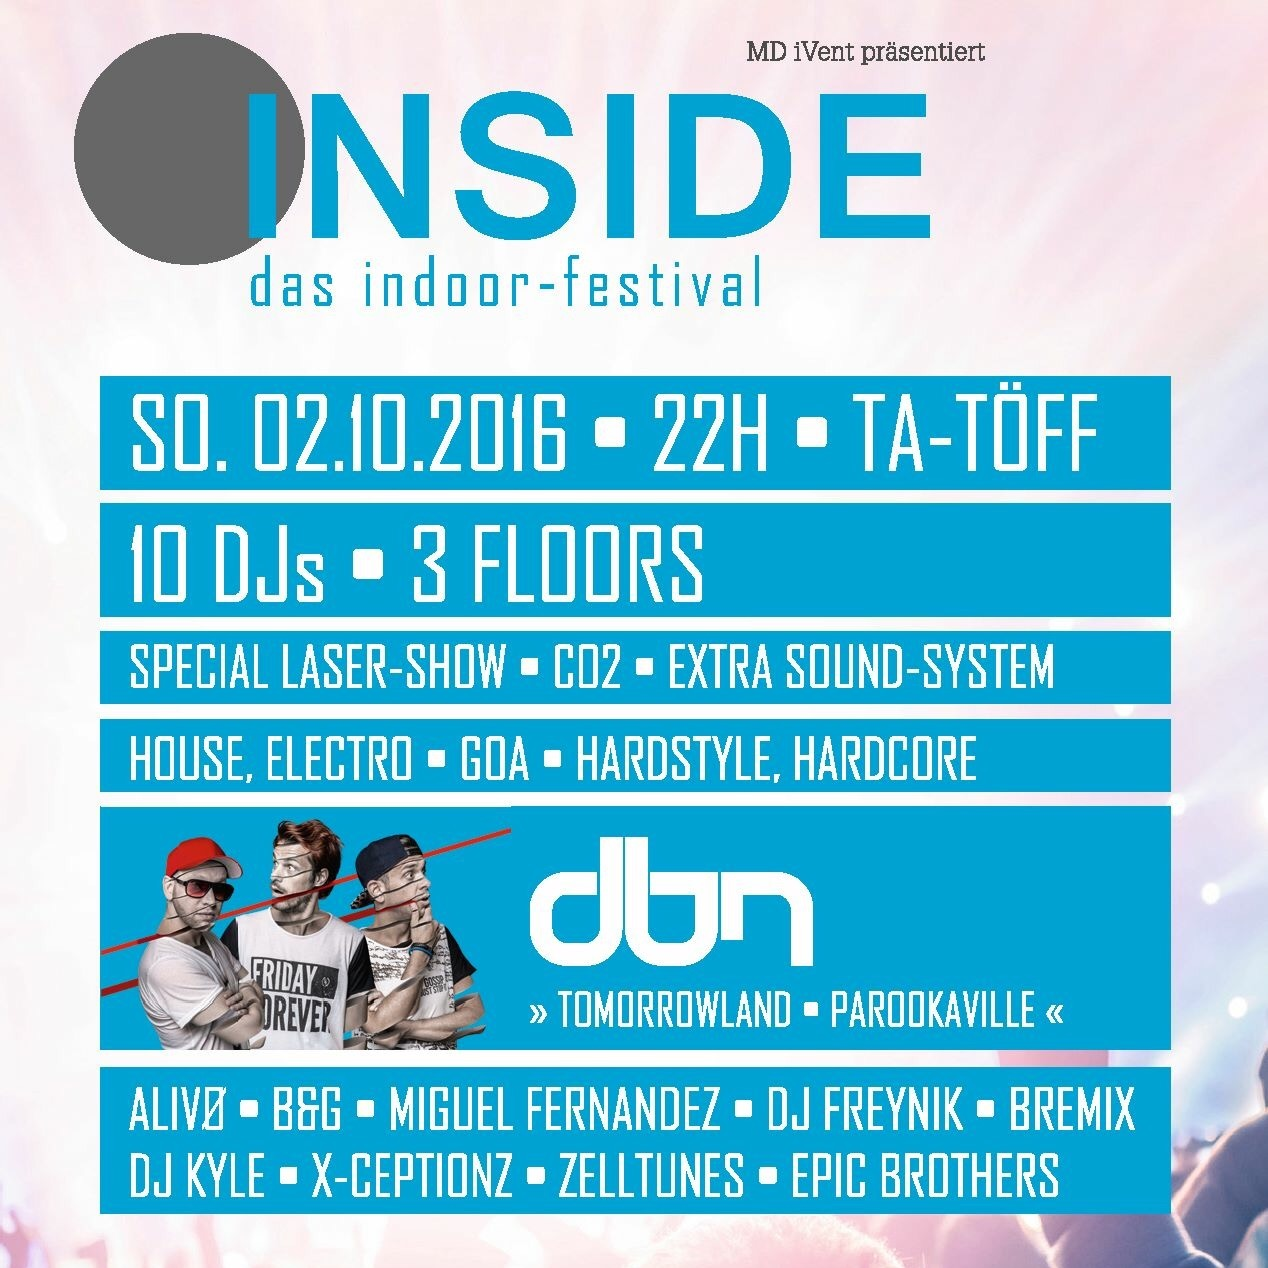 INSIDE. Das Indoor-Festival 3.0